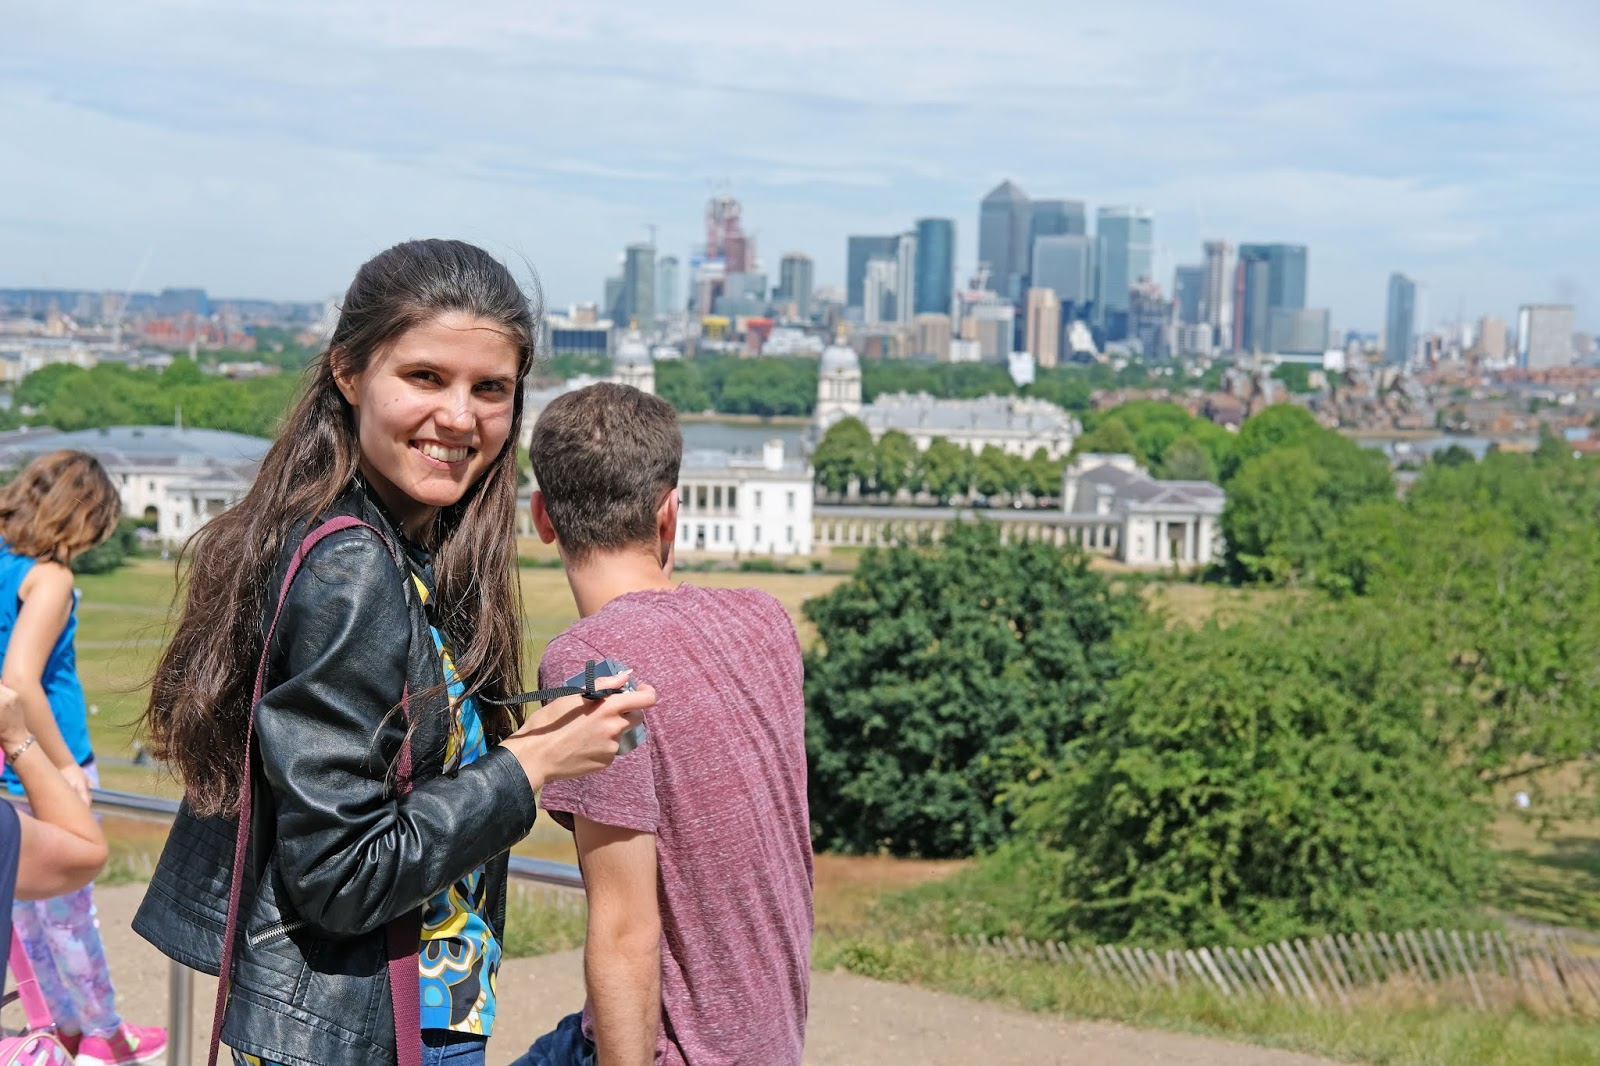 Sightseeing in Greenwich at the Royal Observatory